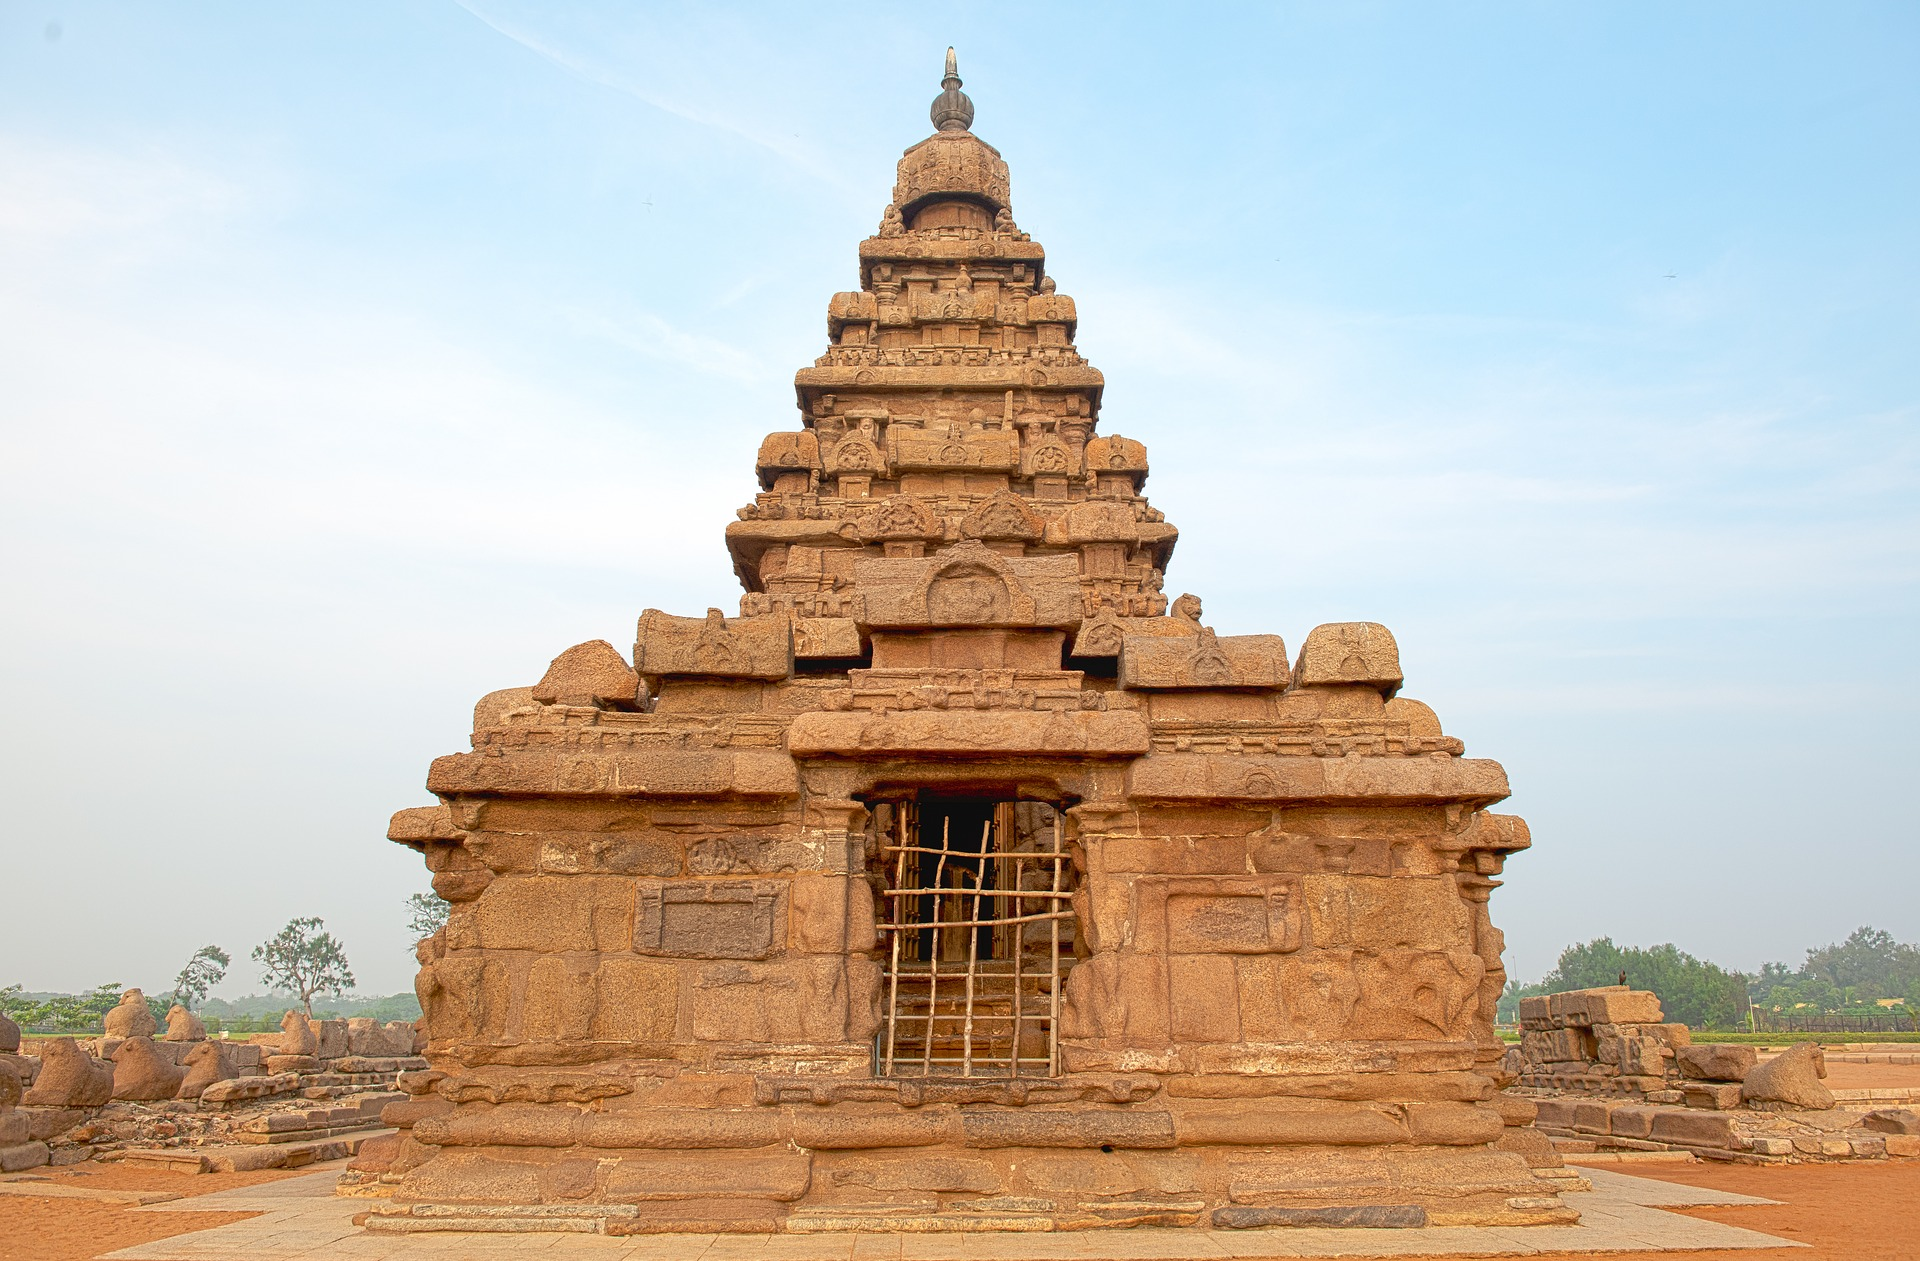 Discover Southern India & Kerala | The Shore Temple Mahabalipuram